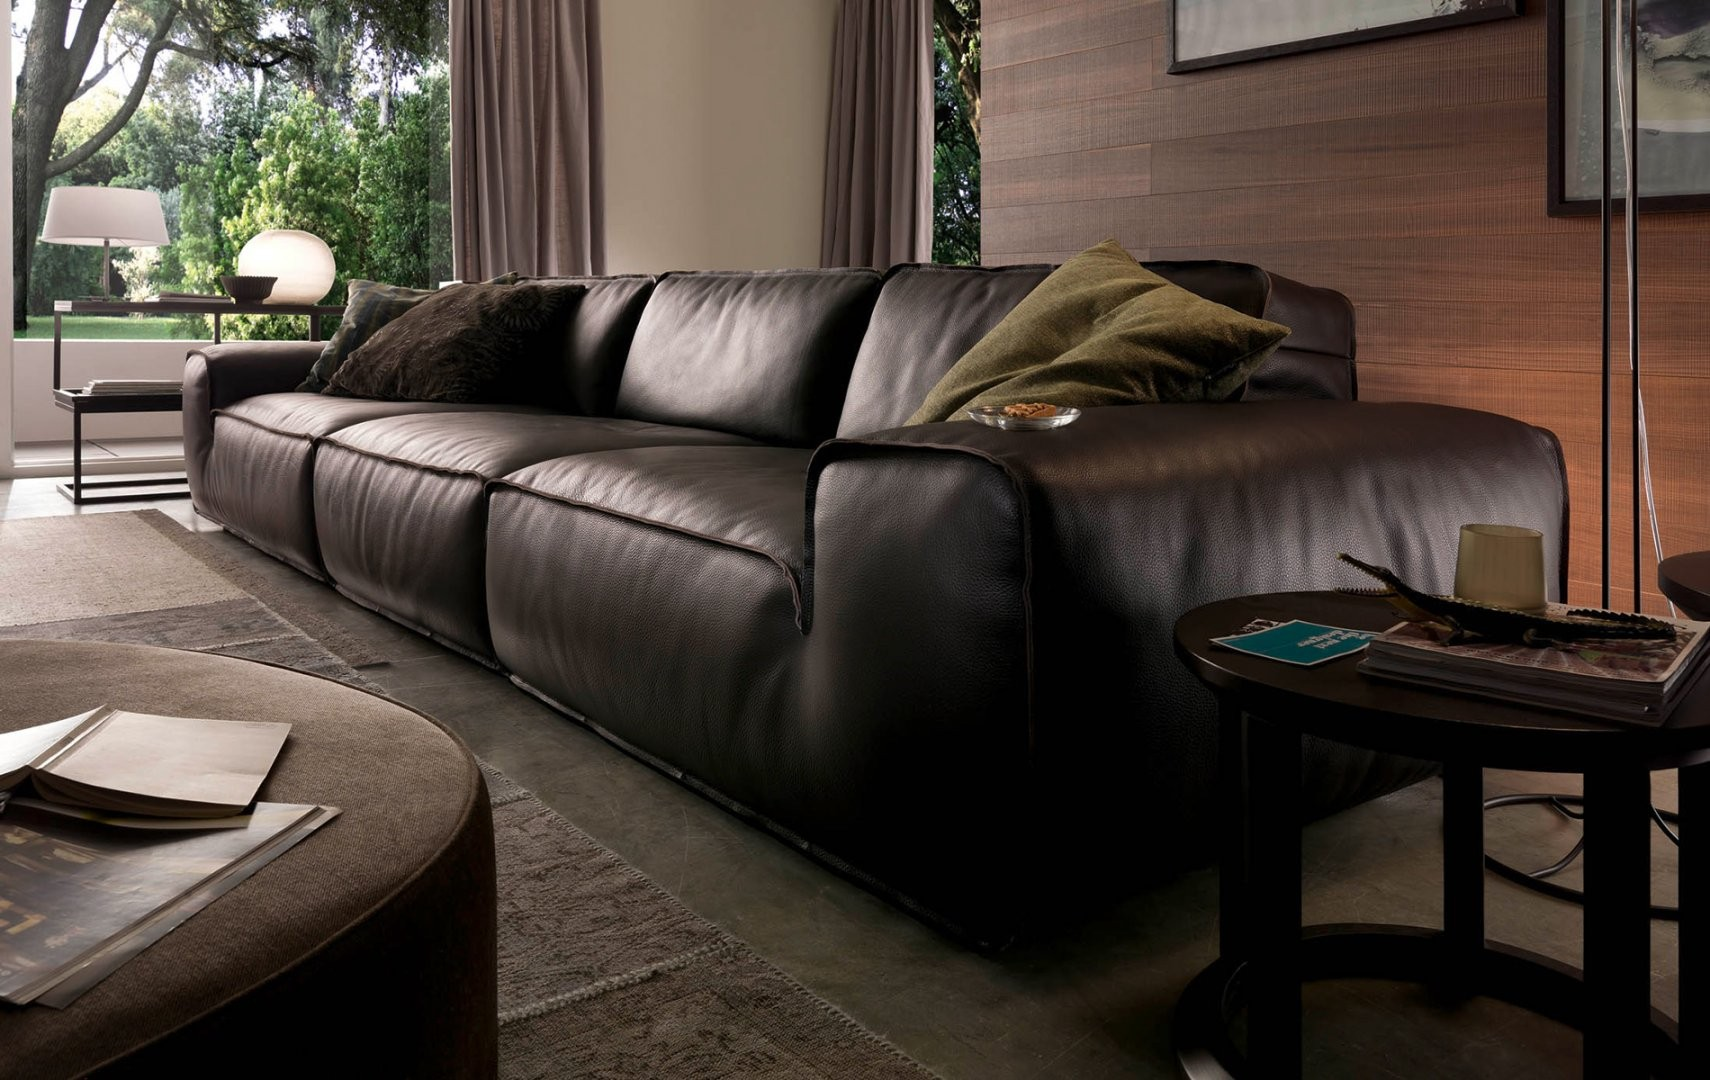 Avenue Leather Sectional By Chateau DAx Italia Is Available At Nova Interiors Modern Furniture